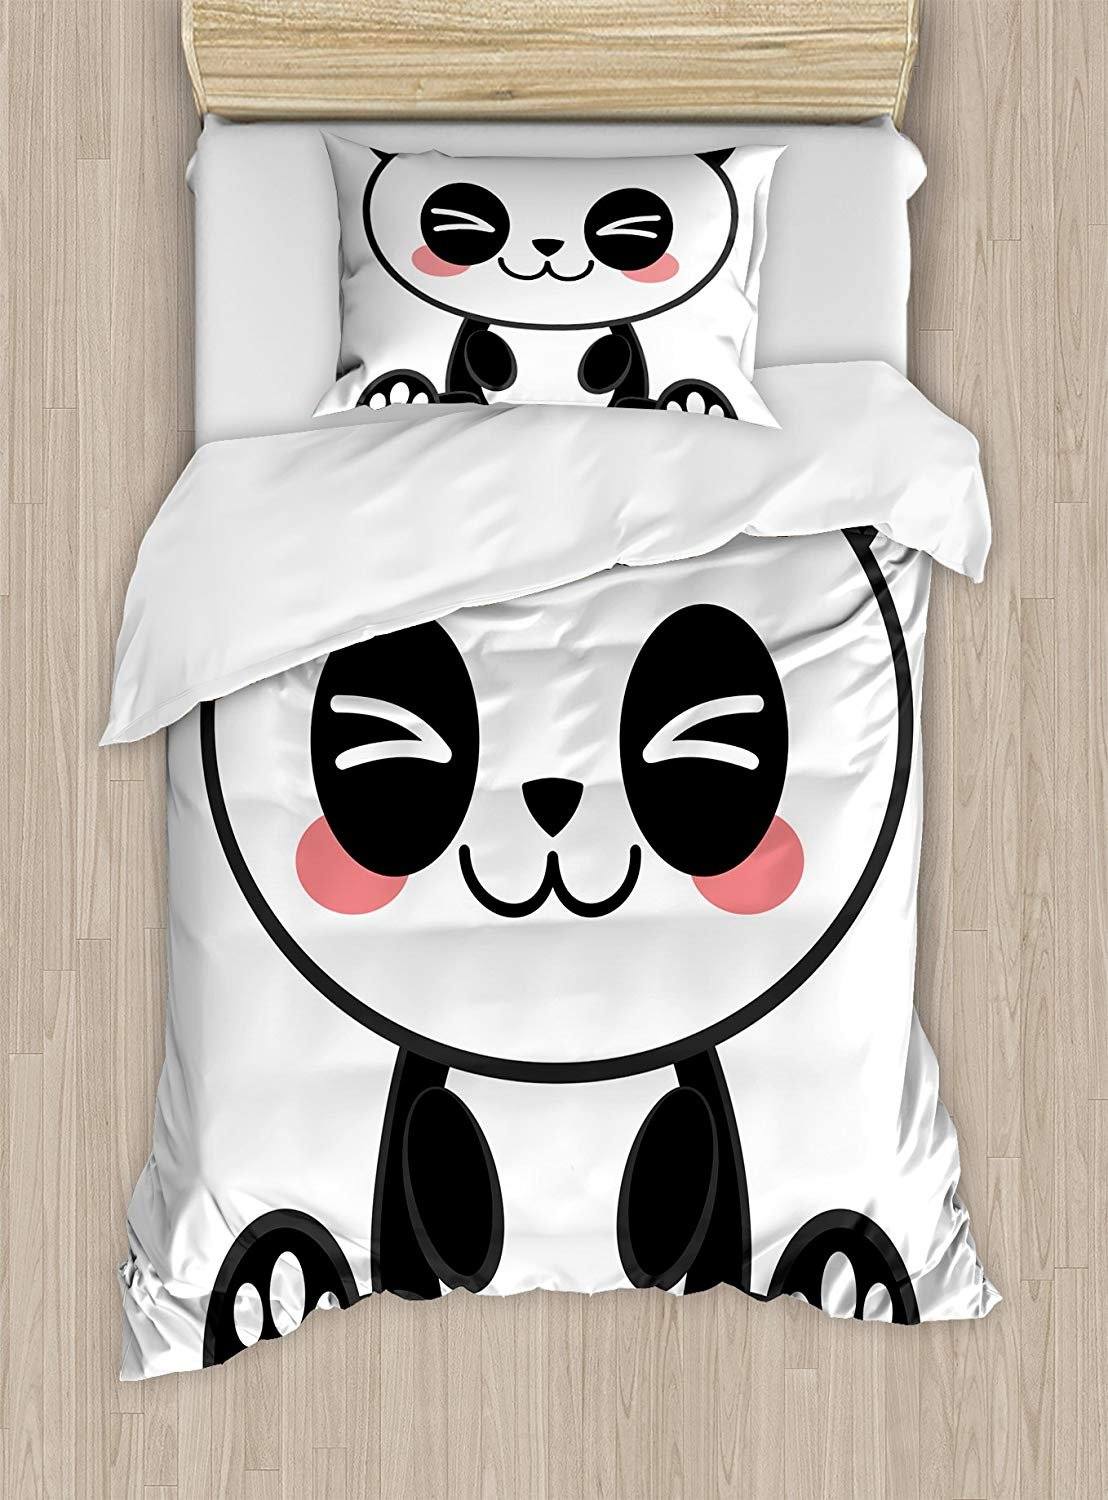 Twin XL Extra Long Bedding Set, Anime Duvet Cover Set, Cute Cartoon Smiling Panda Fun Animal Theme Japanese Manga Kids Teen Art Print, Cosy House Collection 4 Piece Bedding Sets